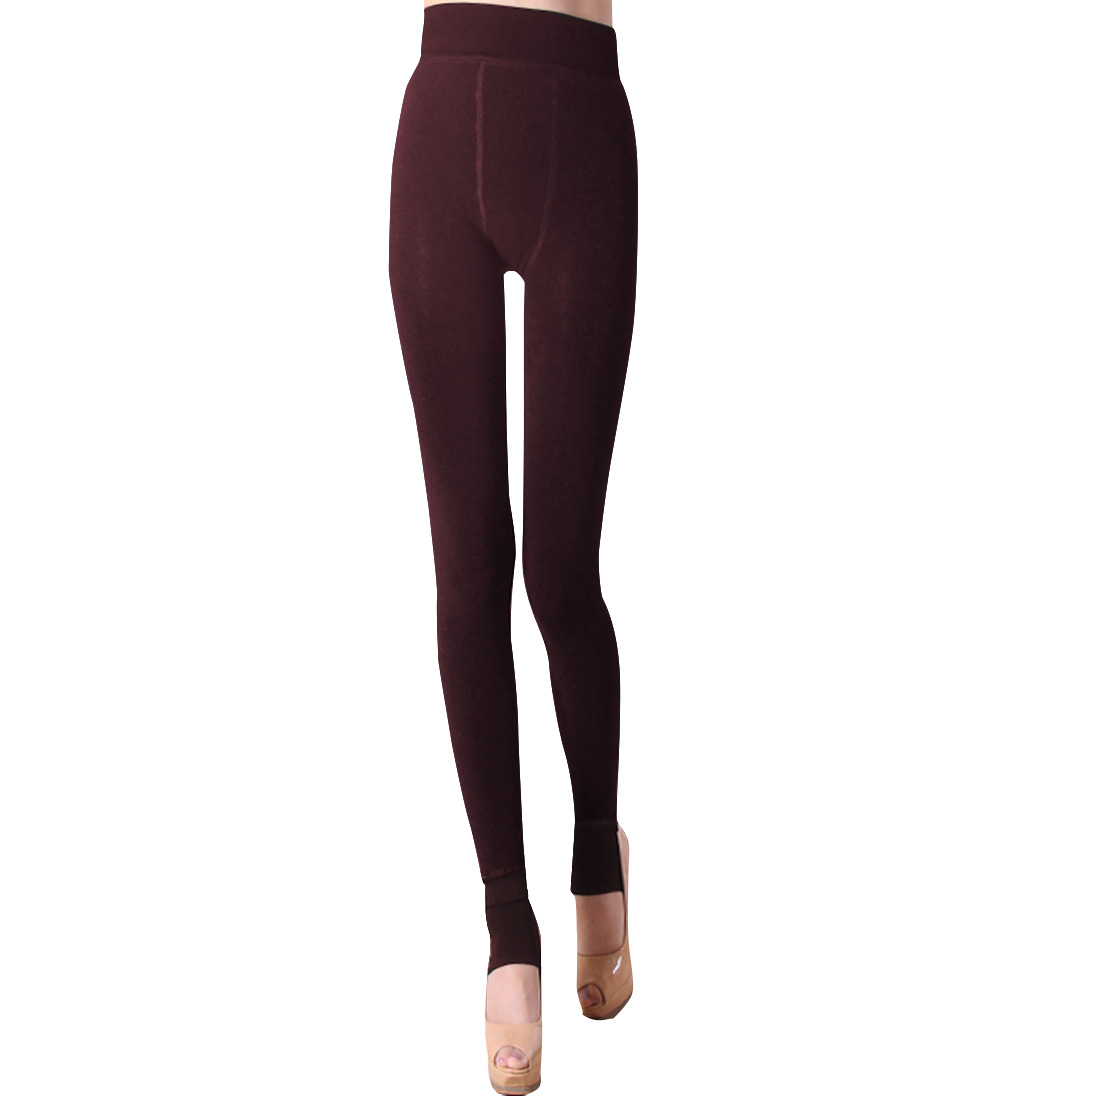 Ladies Chic Burgundy Color Fleece Lined Warm Leggings XS